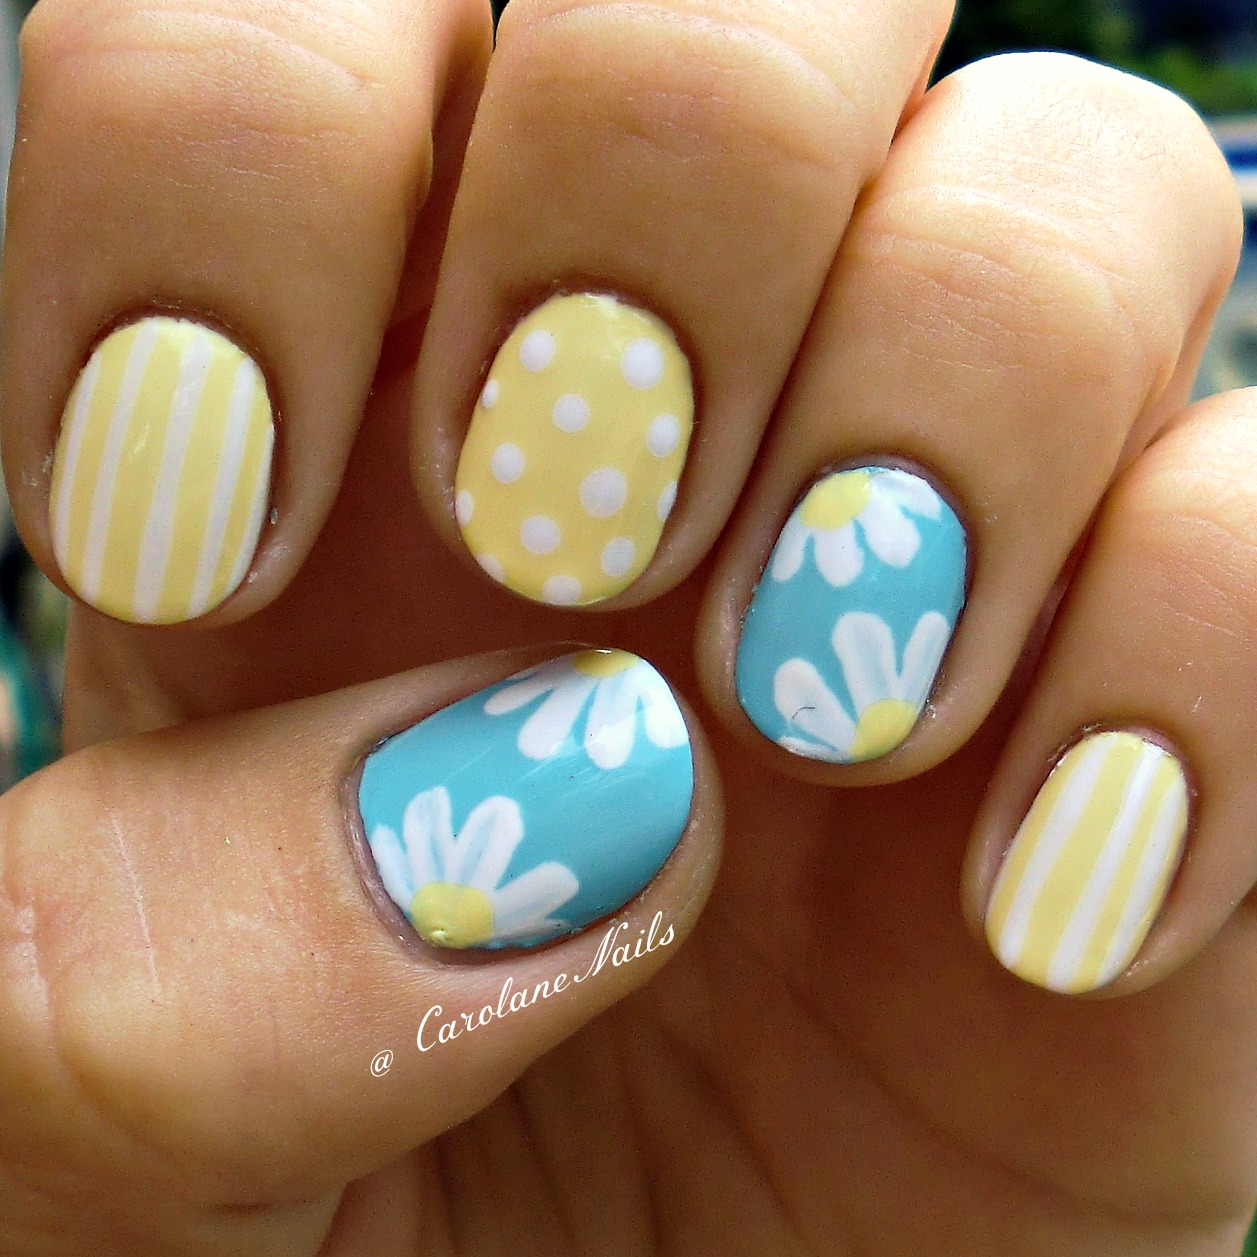 Pretty Nail Art Designs: Best 25+ Summer Acrylic Nails Ideas On Pinterest